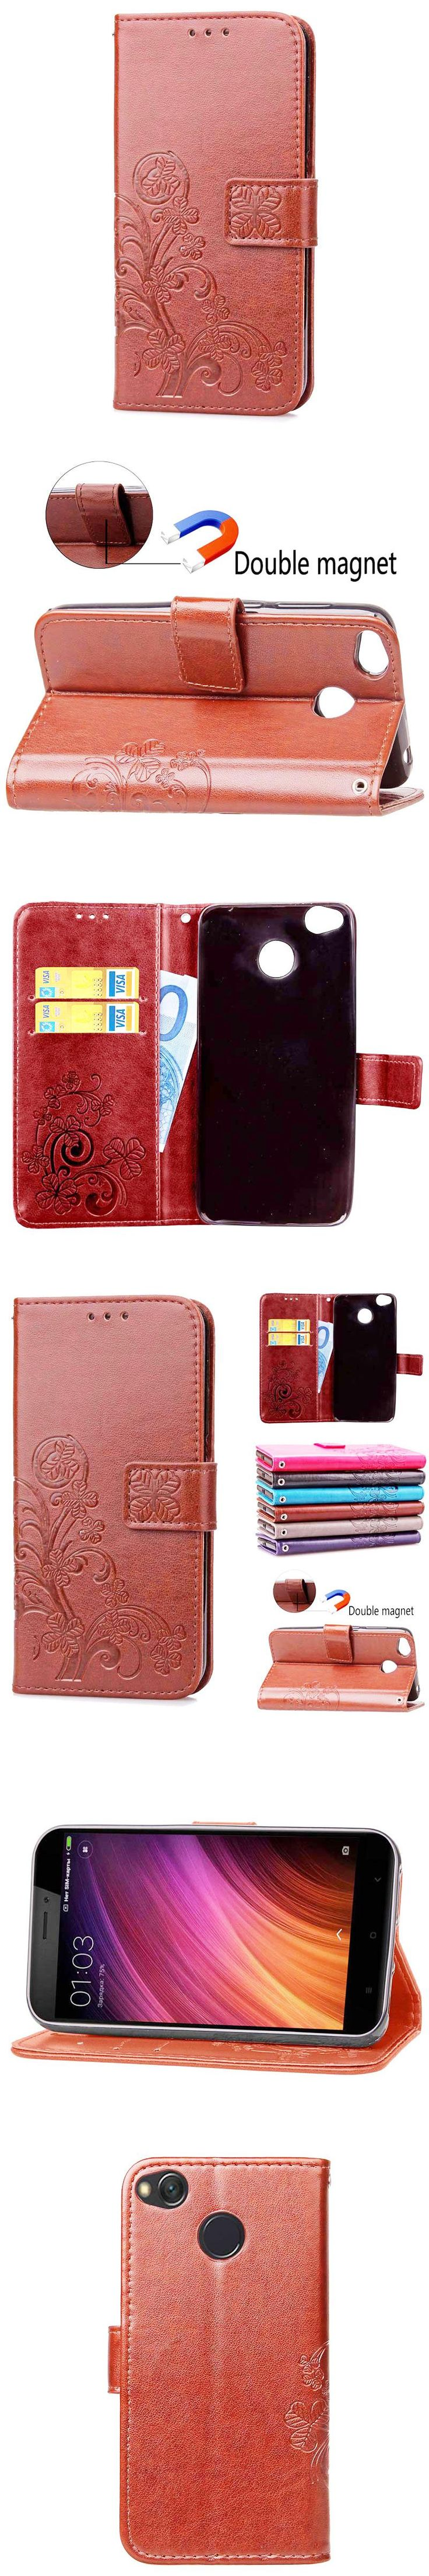 For Xiaomi Redmi 4X BEFOSPEY Leaf Leaves Magnetic Wallet Leather Phone Case Luxury Elegant Cover Cases Mobile Phone Holster Bag